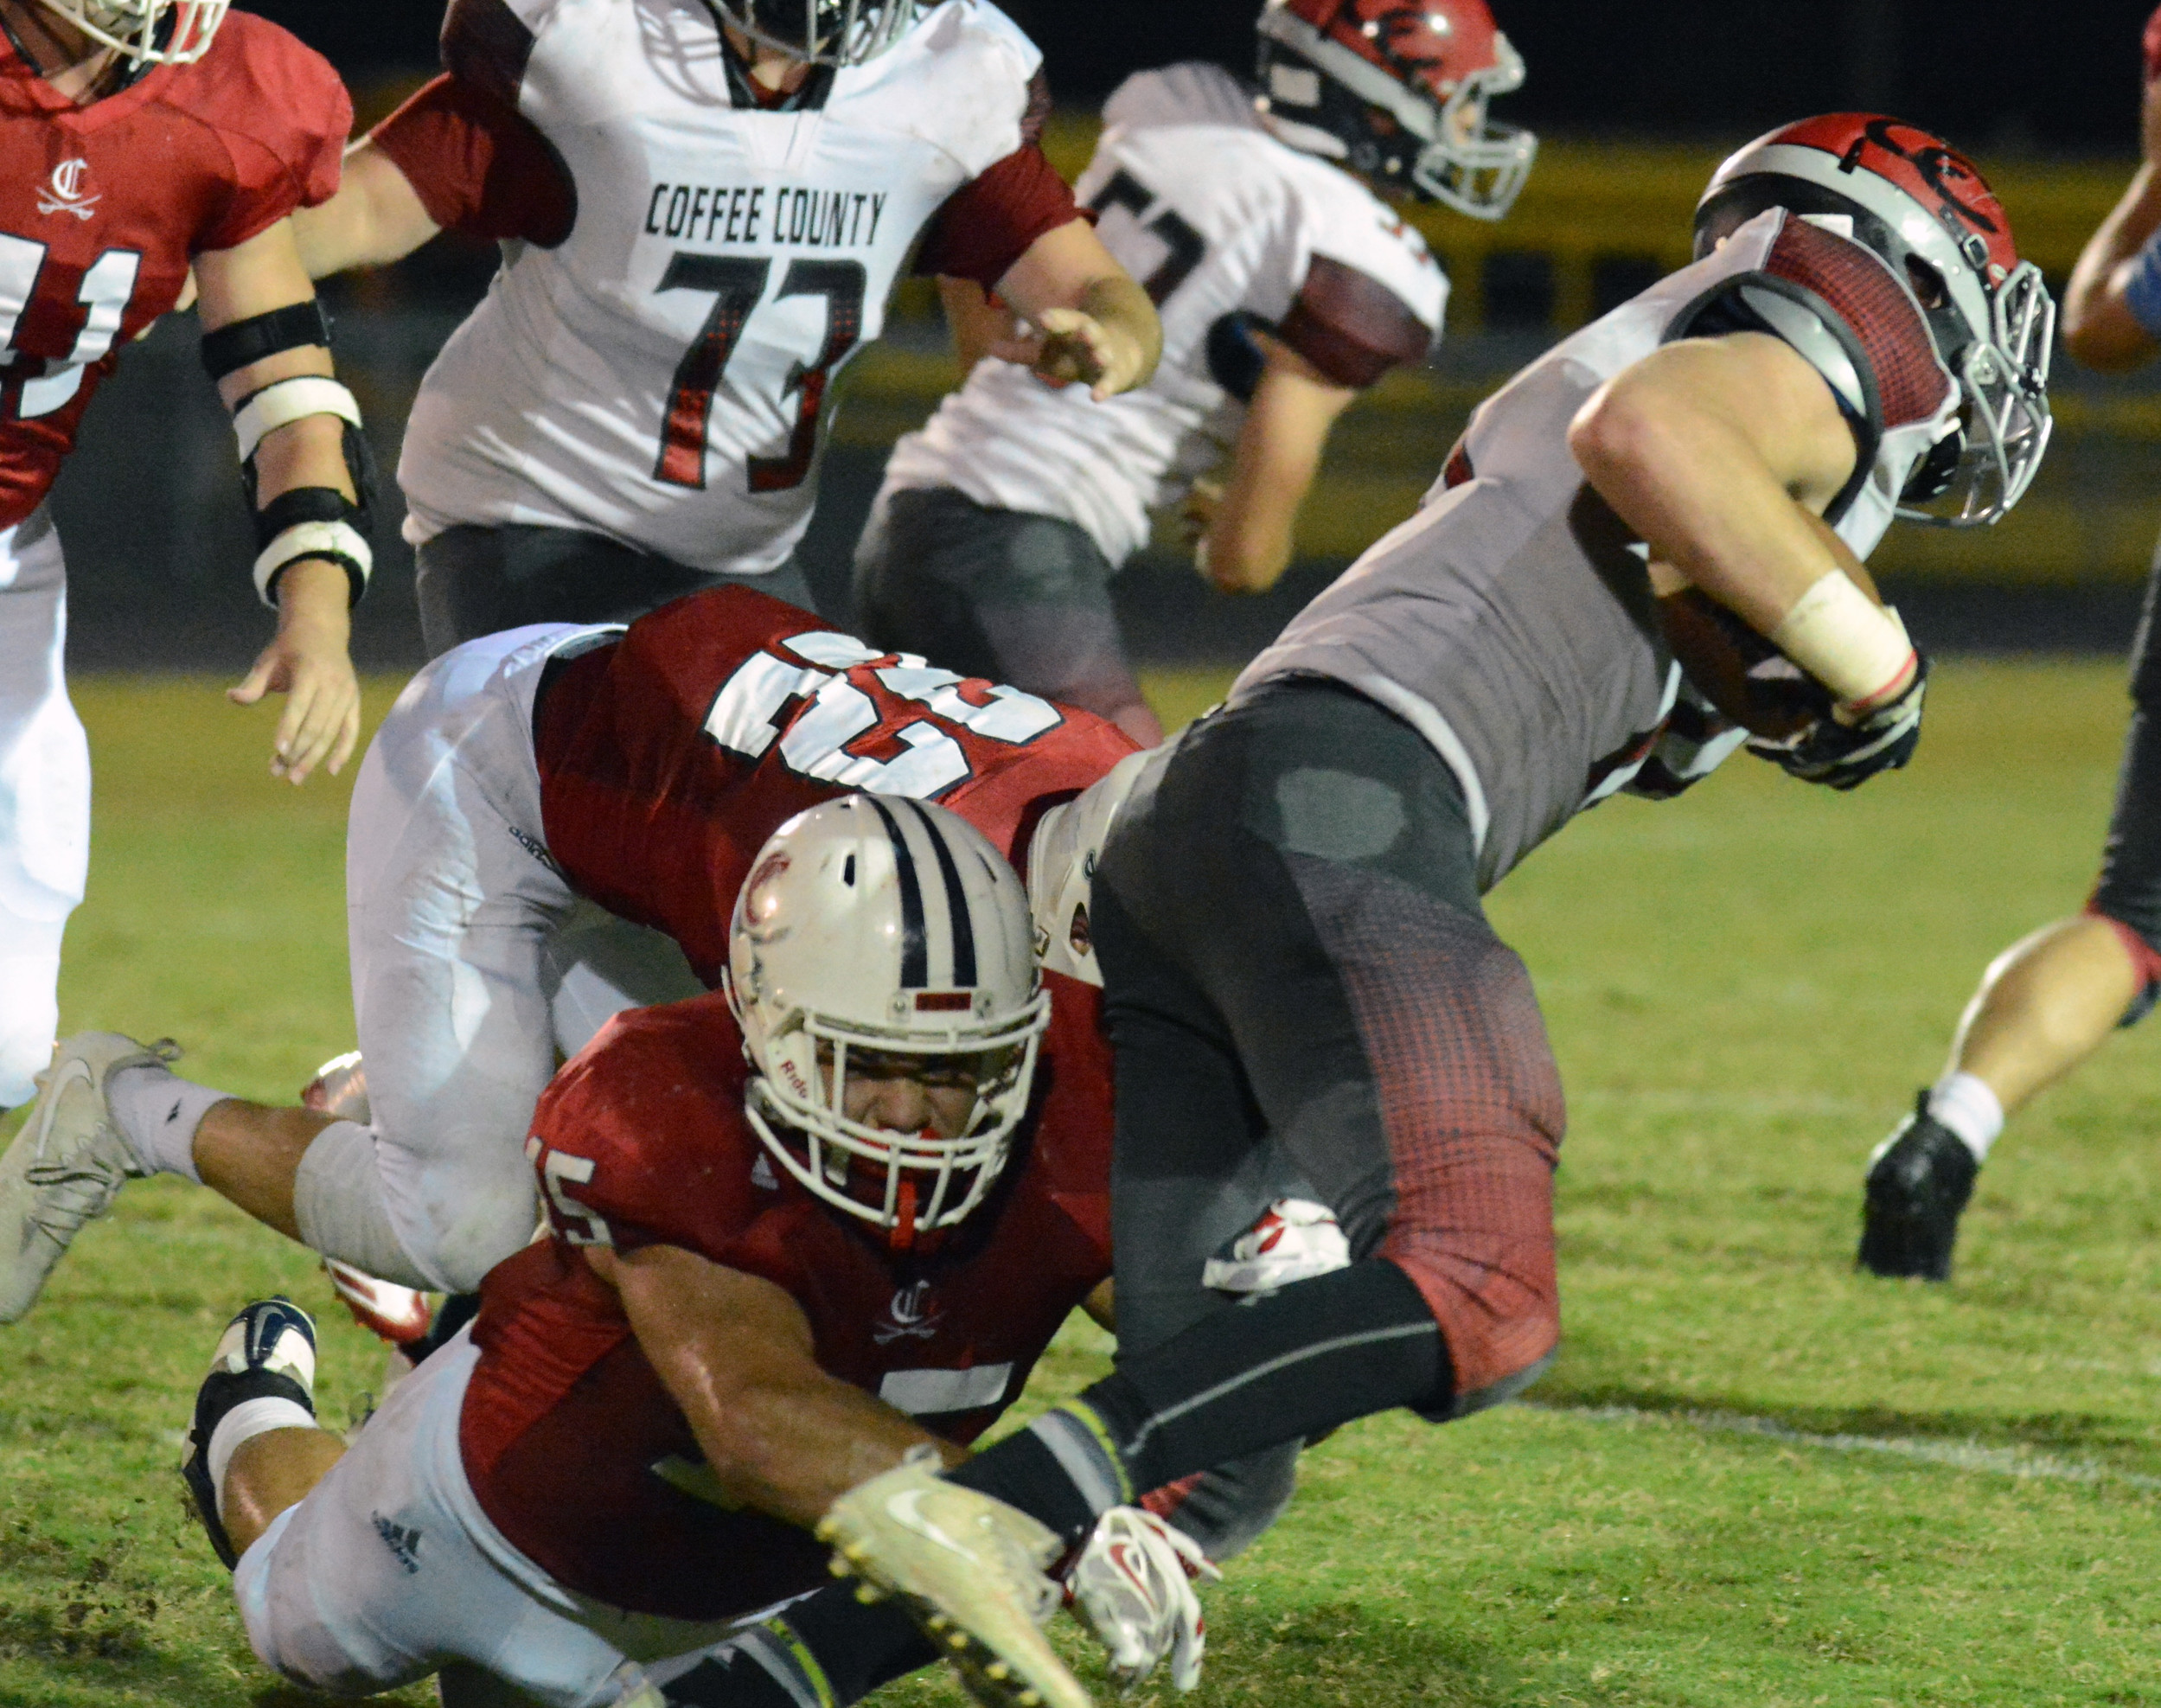 Cavs remain perfect, beat Coffee County 45-21 | Herald Citizen